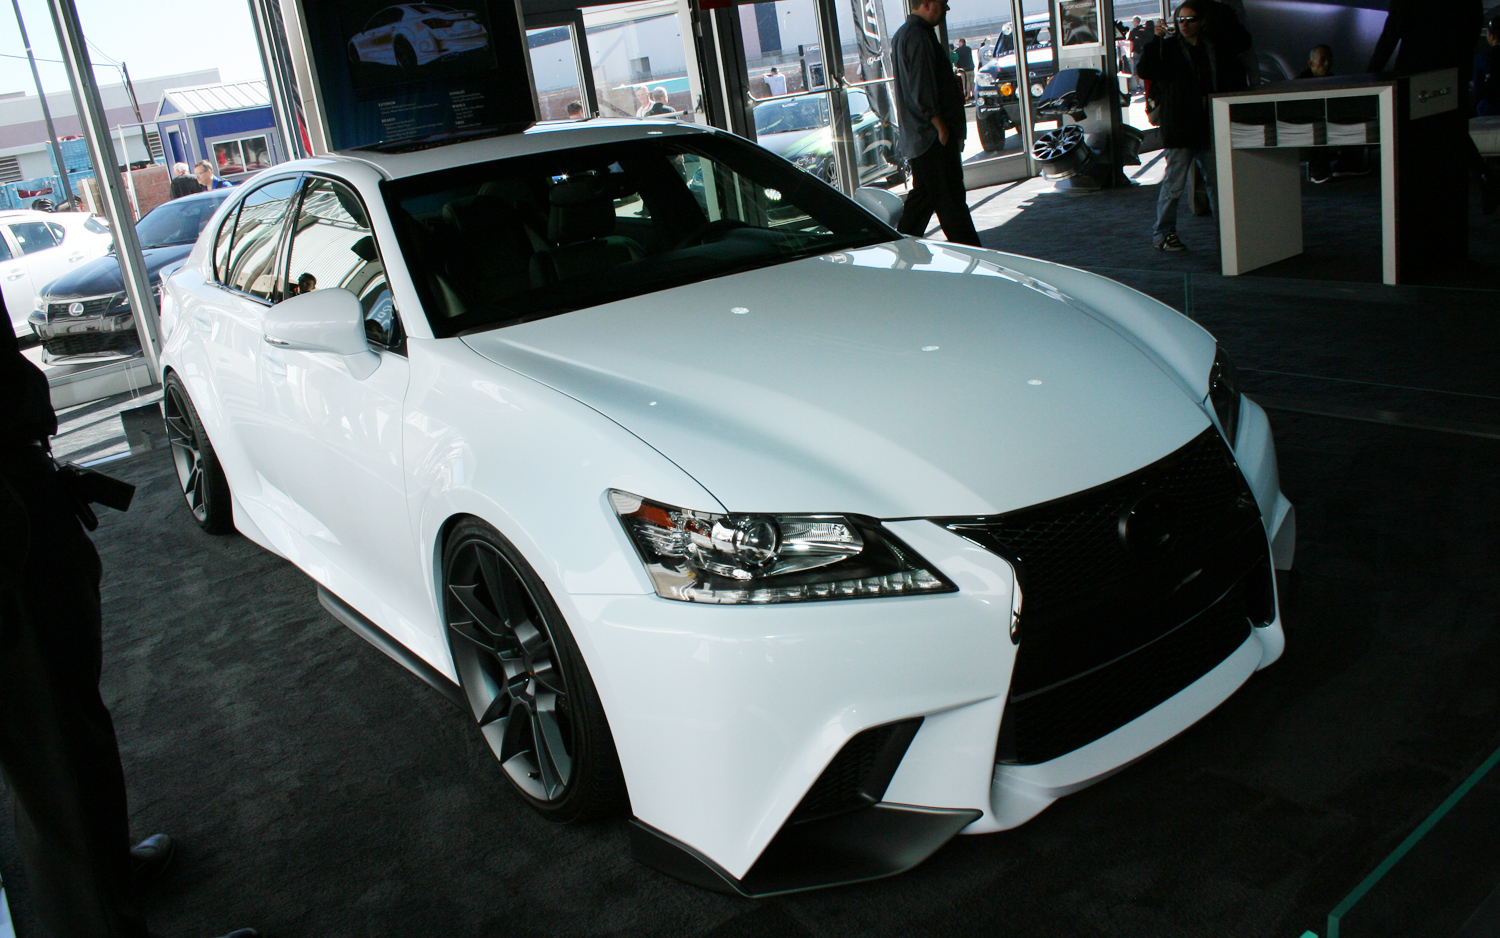 https://enthusiastnetwork.s3.amazonaws.com/uploads/sites/5/2011/10/2013-Lexus-GS-350-F-Sport-front-three-quarters.JPG.jpg?impolicy=entryimage